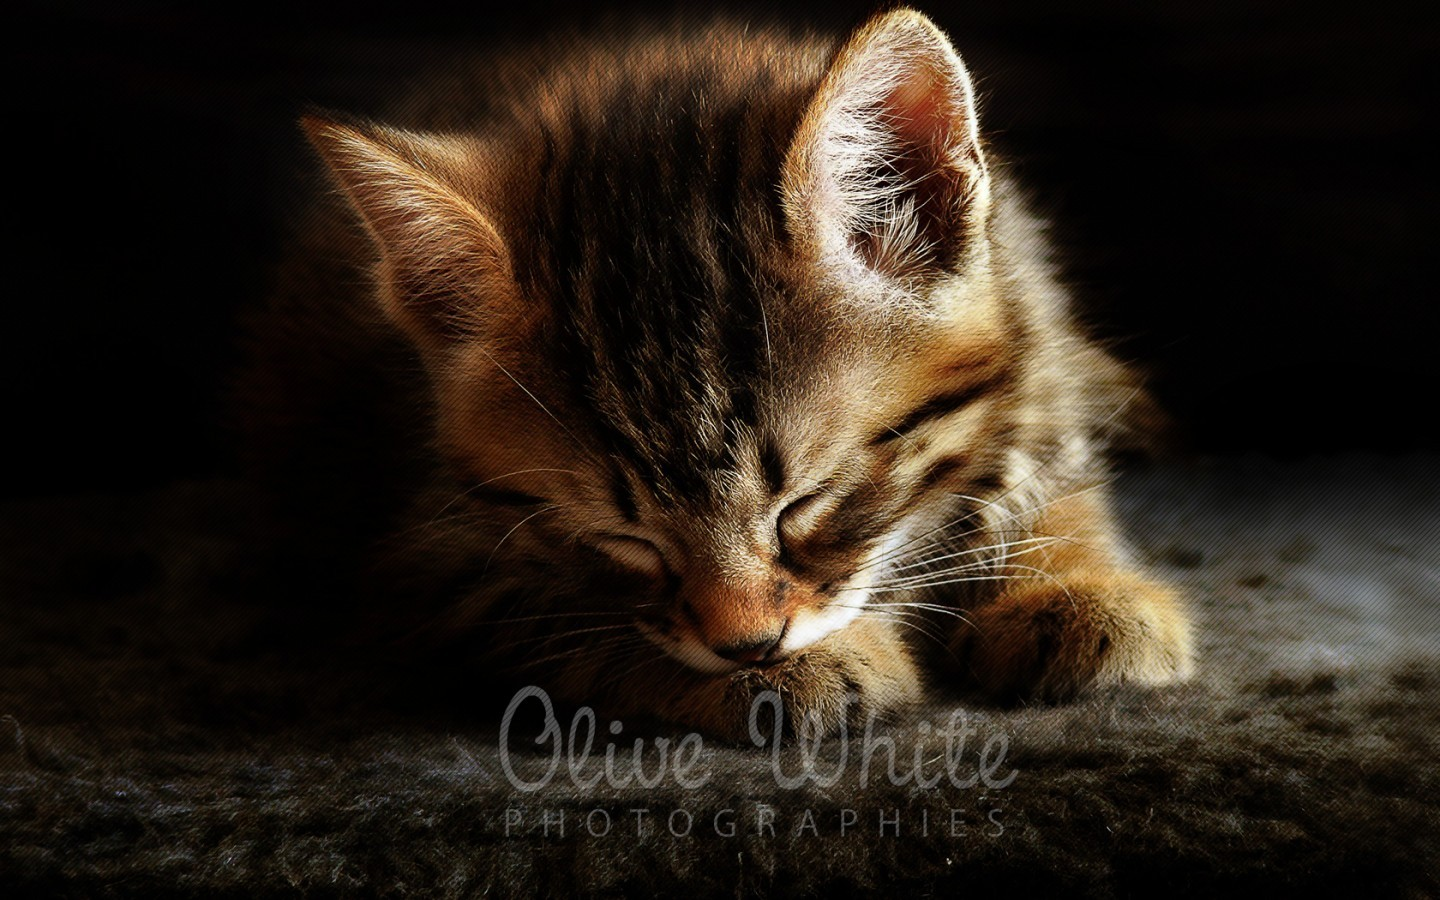 Cute Kitty Cat Wallpapers Corto Le Chaton Wallpapers Corto Le Chaton Stock Photos